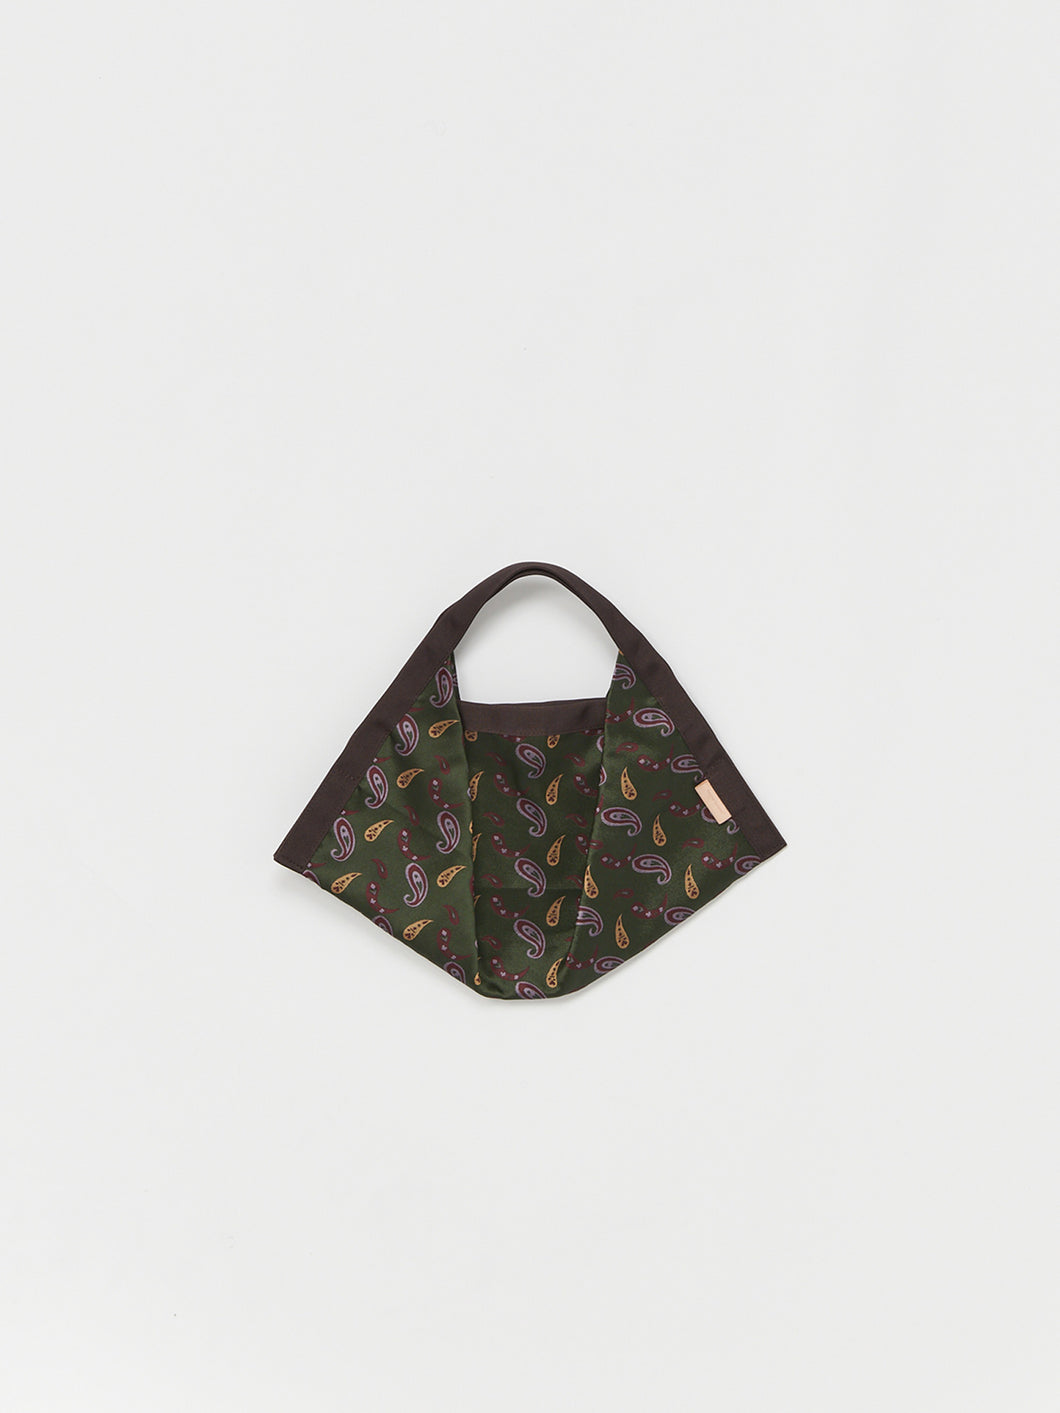 Hender Scheme / origami bag small (PAISLEY)